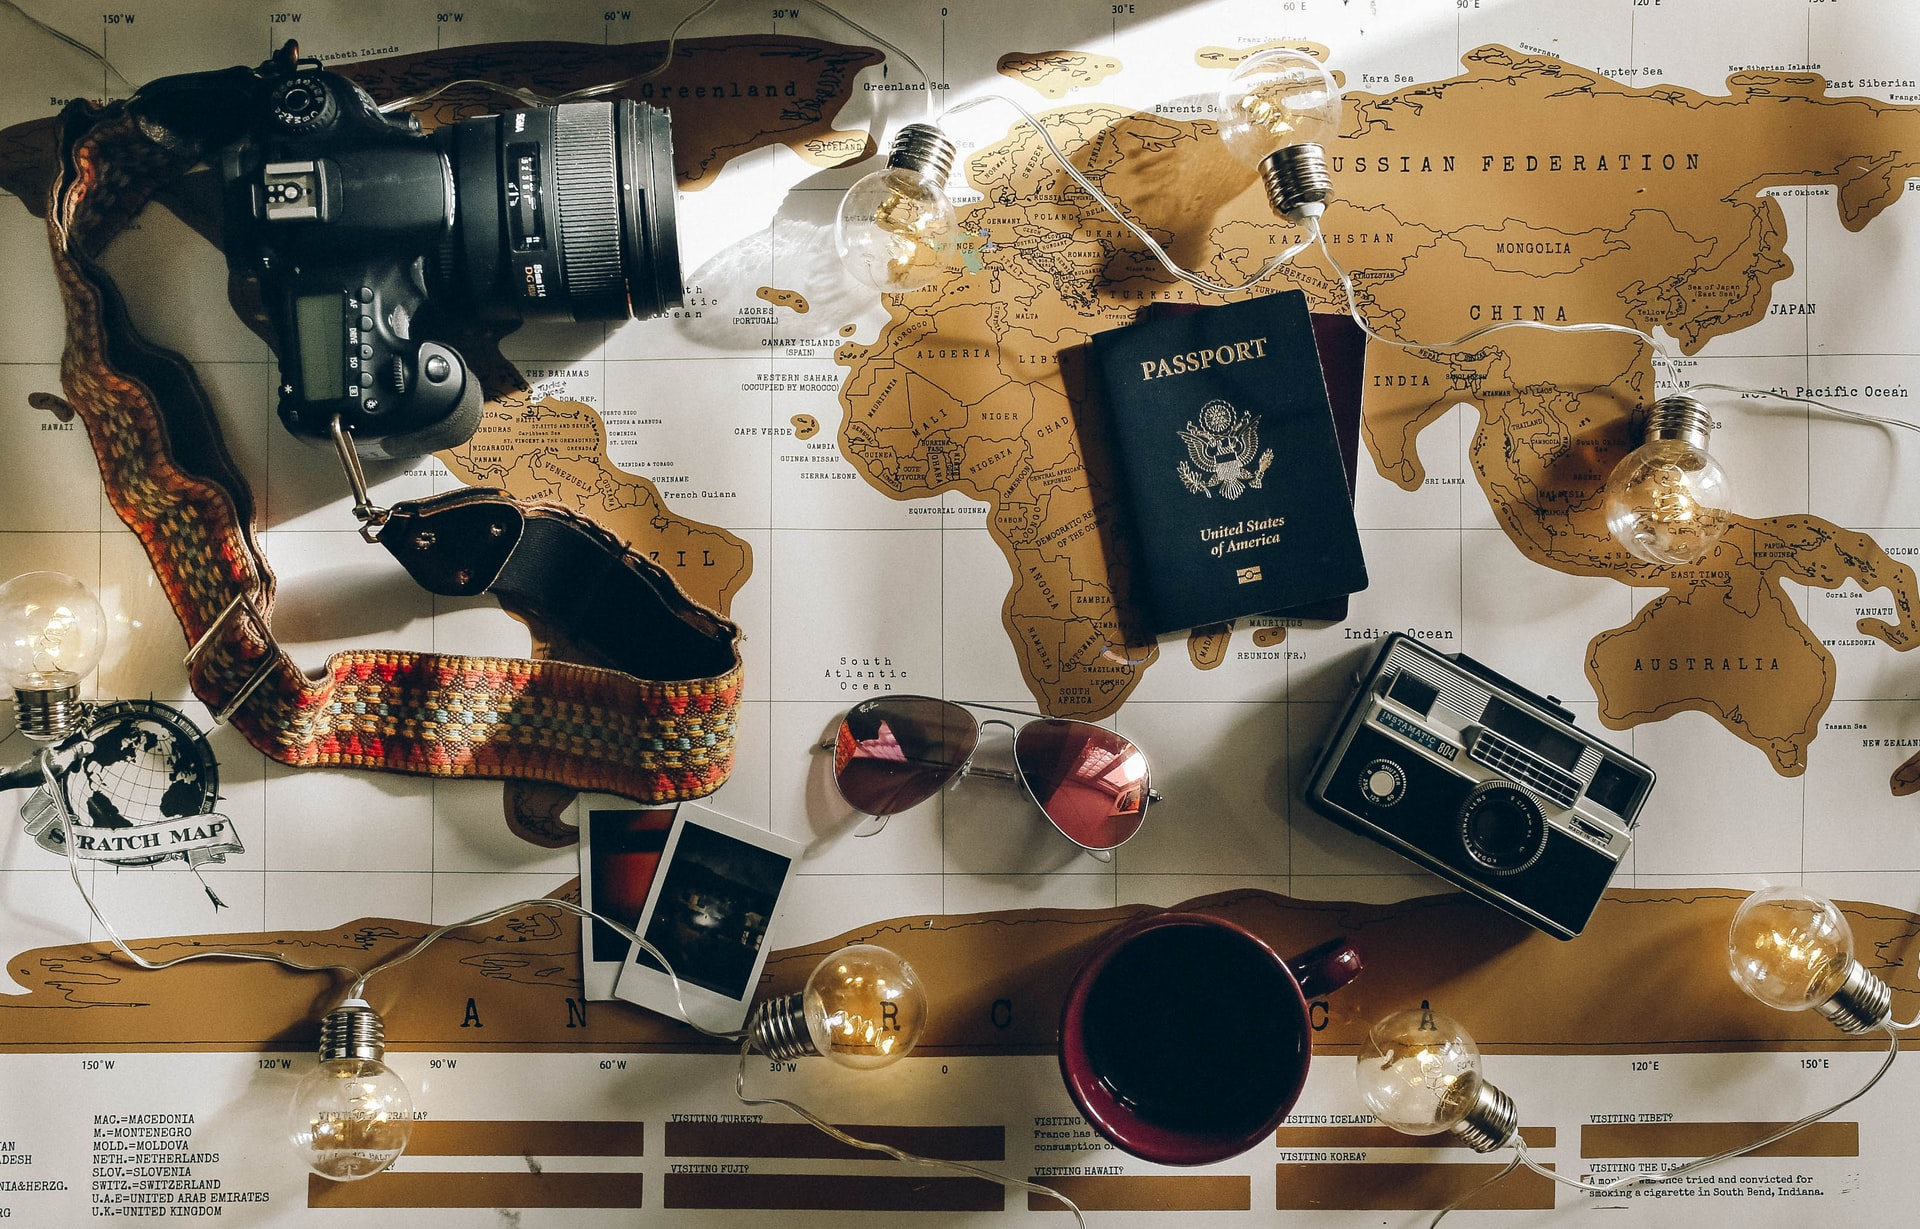 a digital camera, two polaroid photos, a passport, sunglasses, a film camera and light bulbs placed on top of a brown and white map